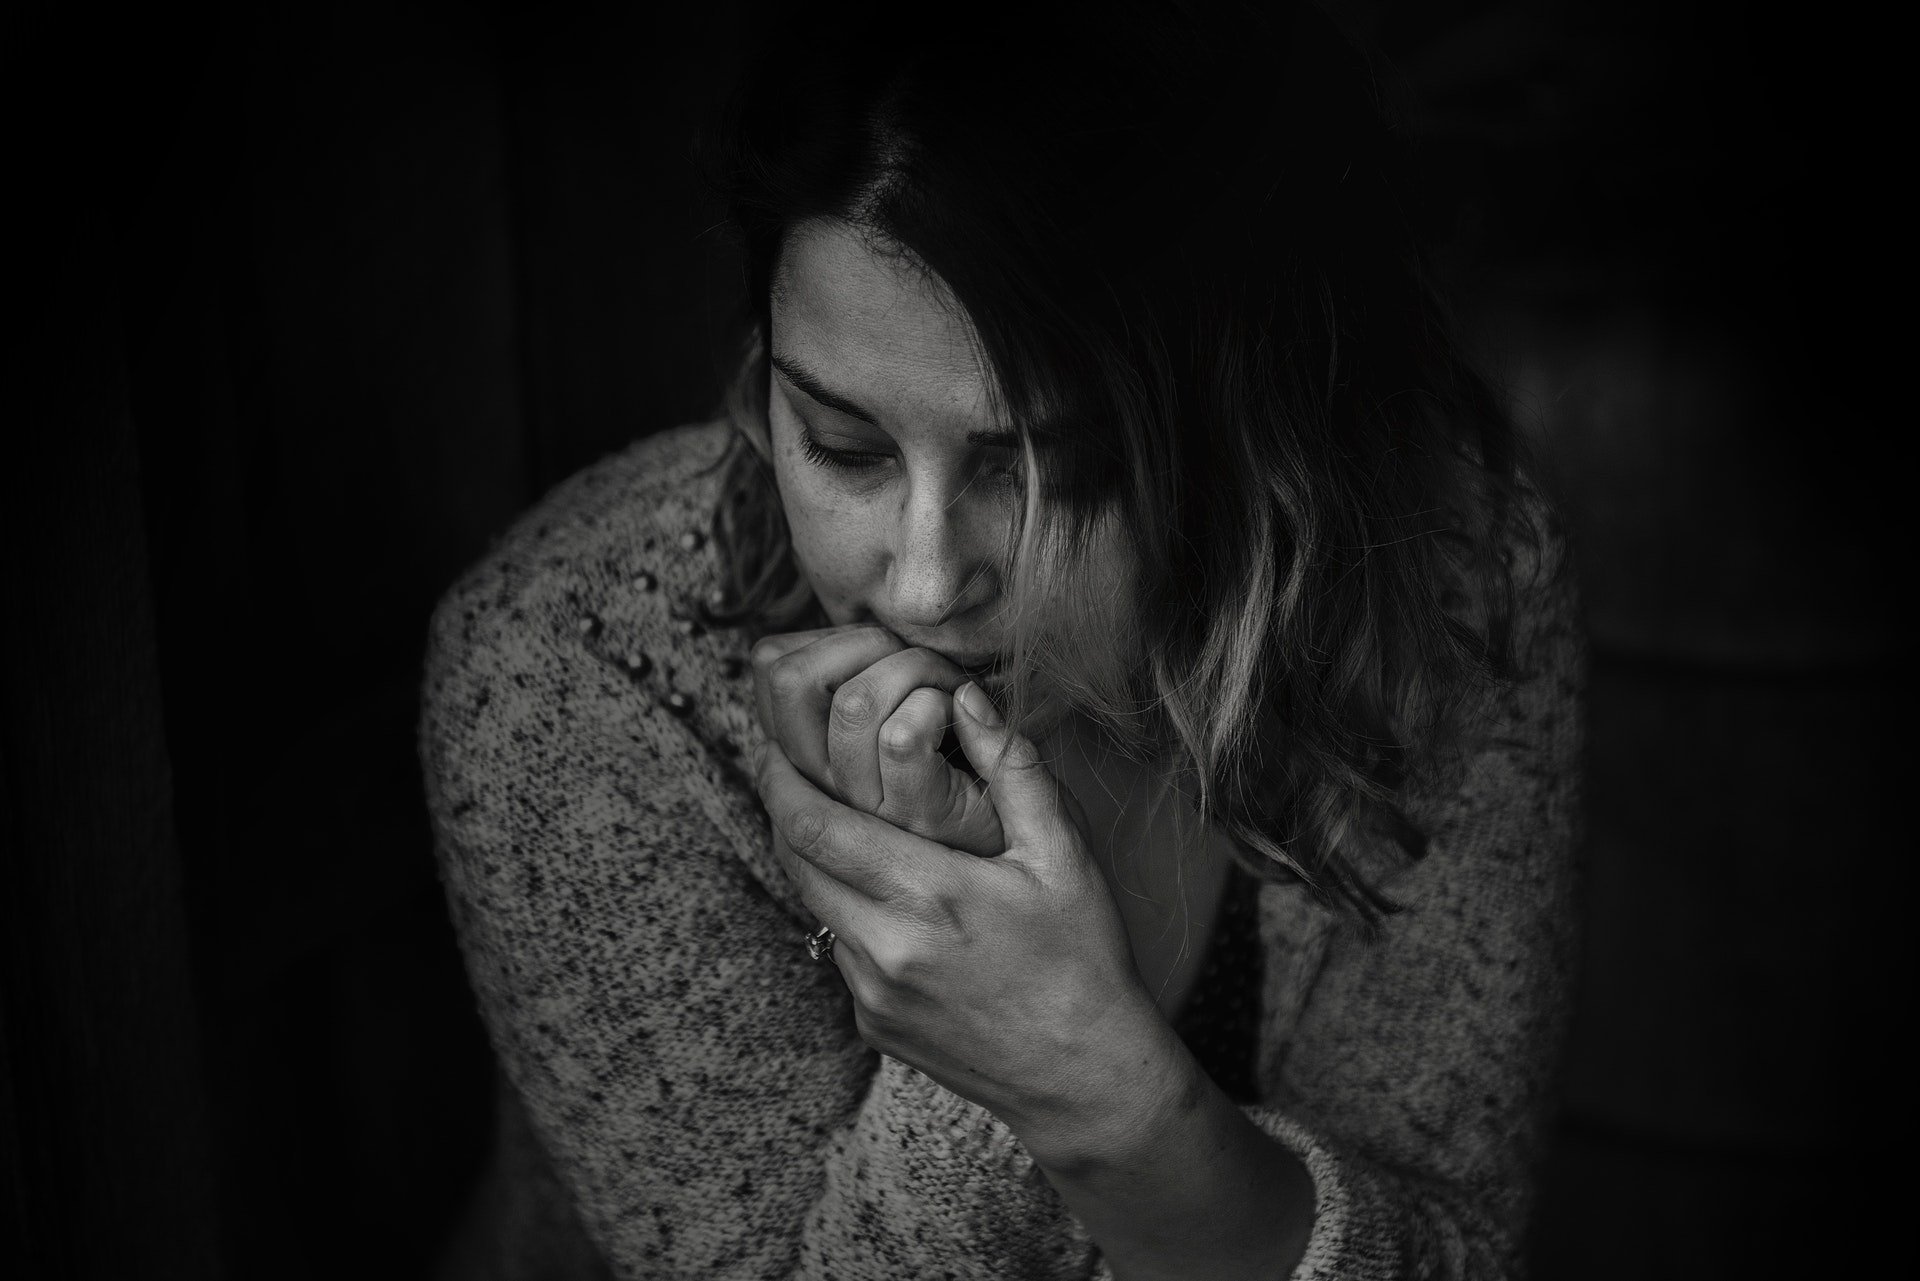 Managing Grief in These Times